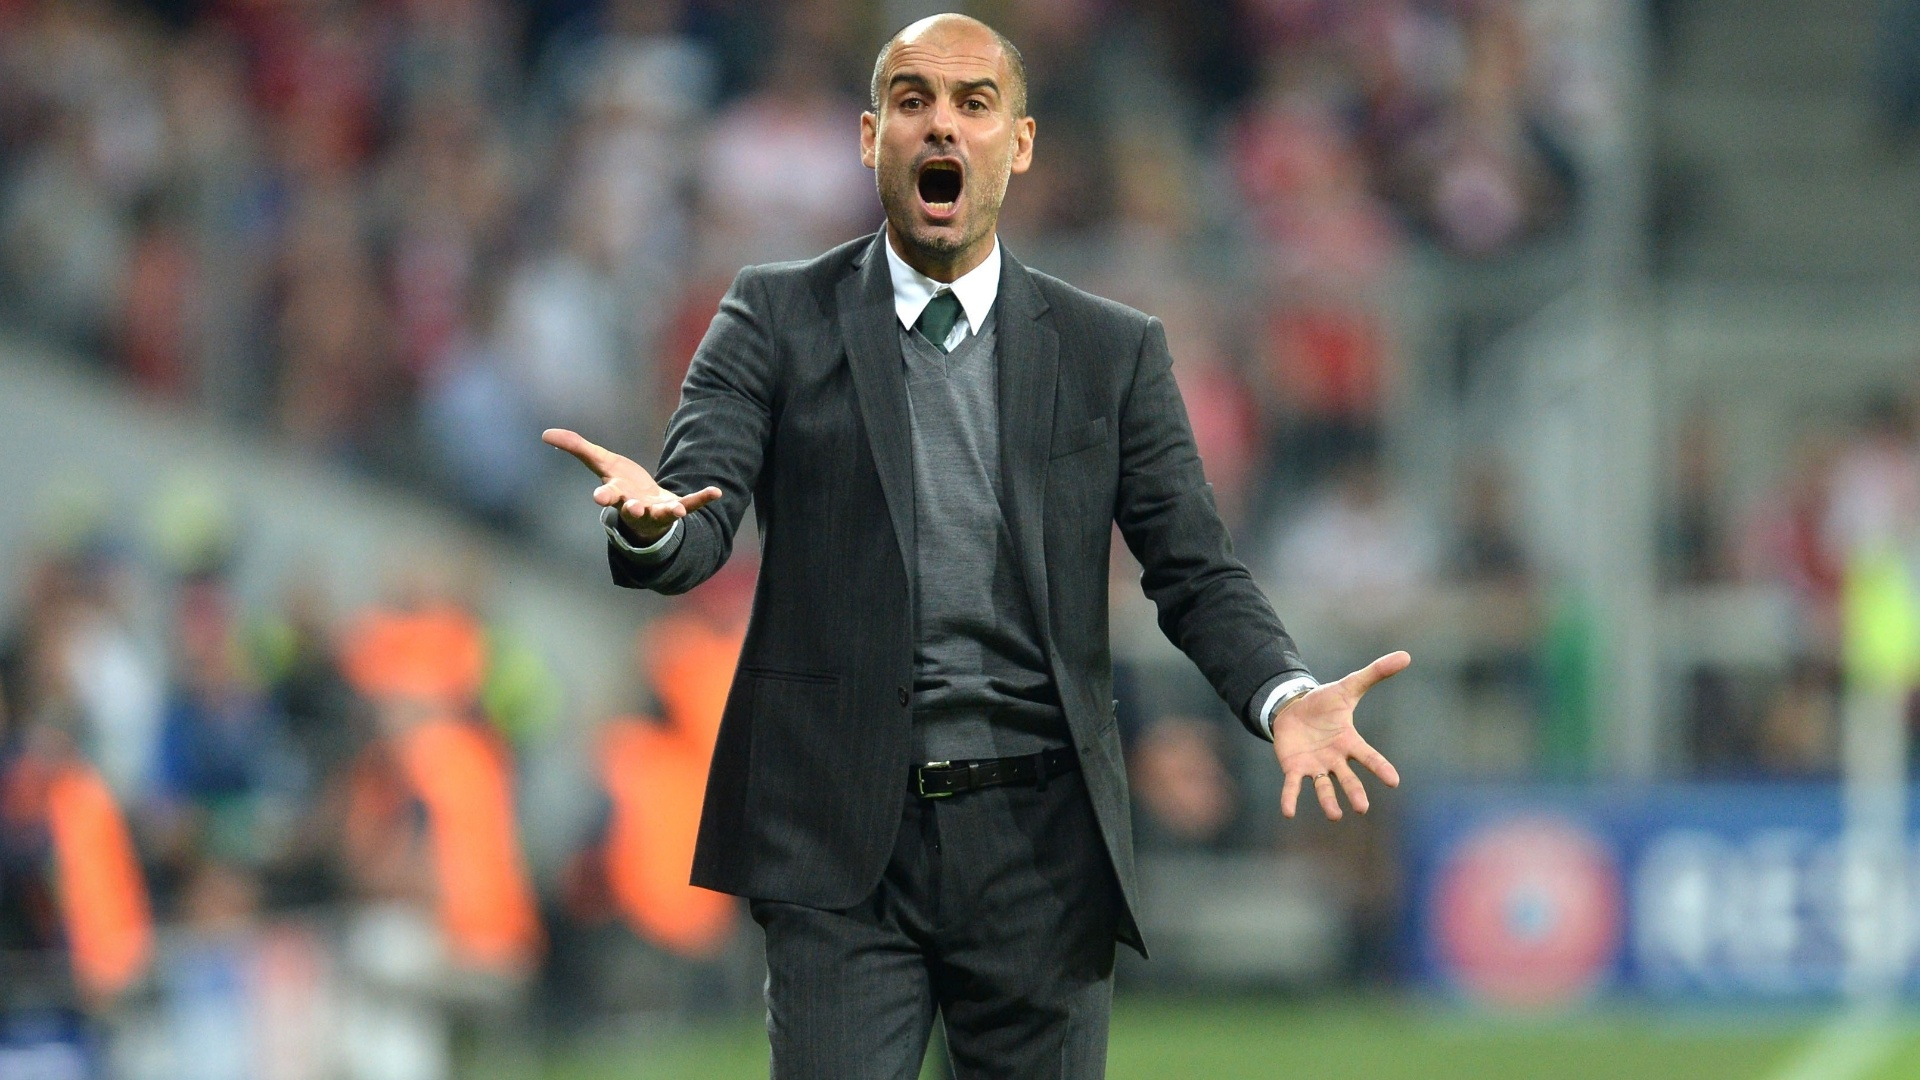 Guardiola reclama de lance em jogo do Bayern de Munique contra o Manchester City